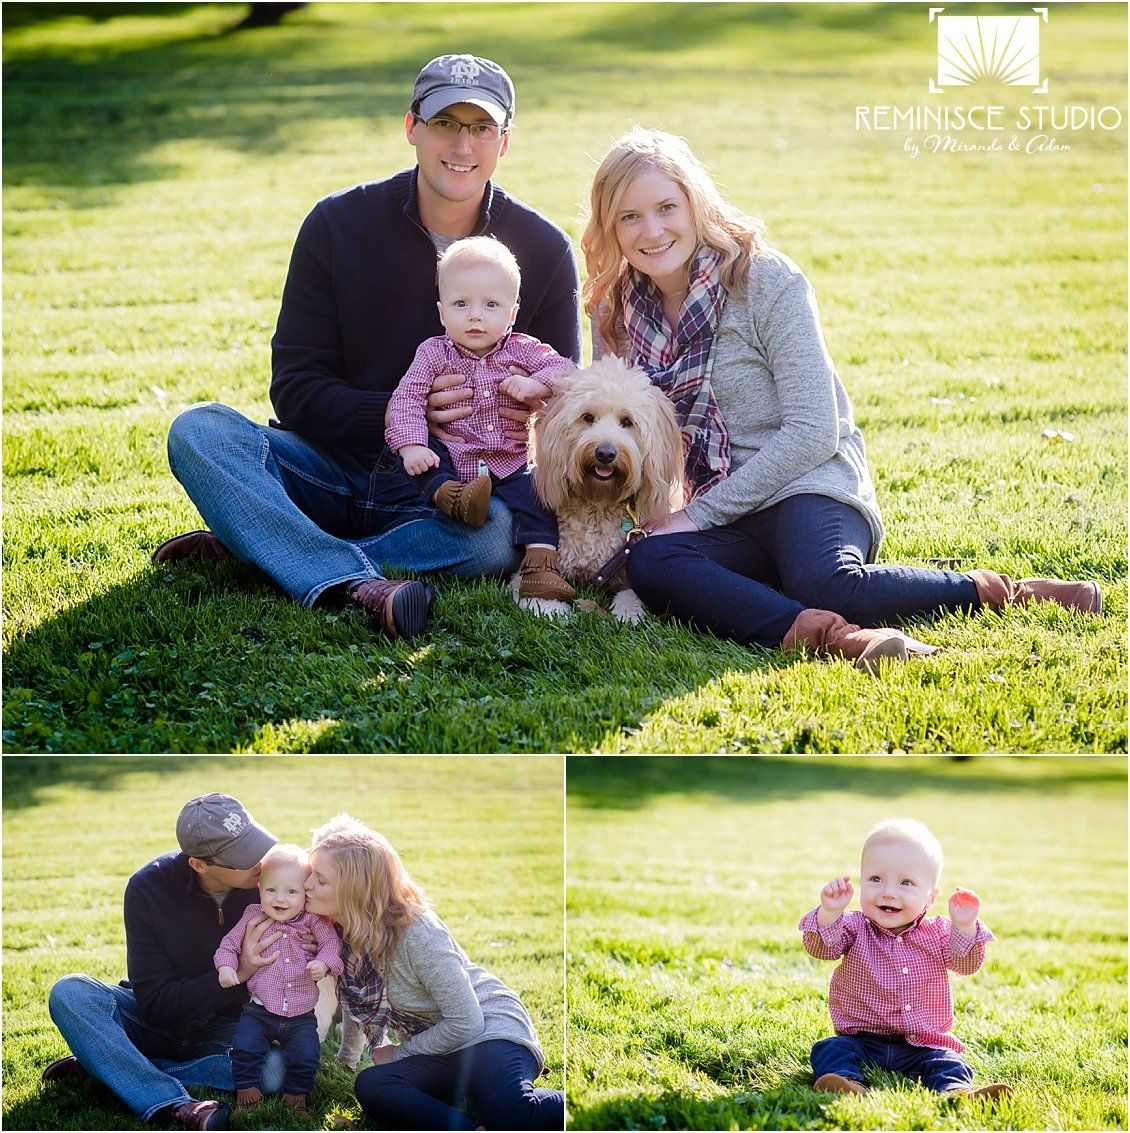 Family Session Wardrobe Inspiration: Mix colors, shades, textures ...